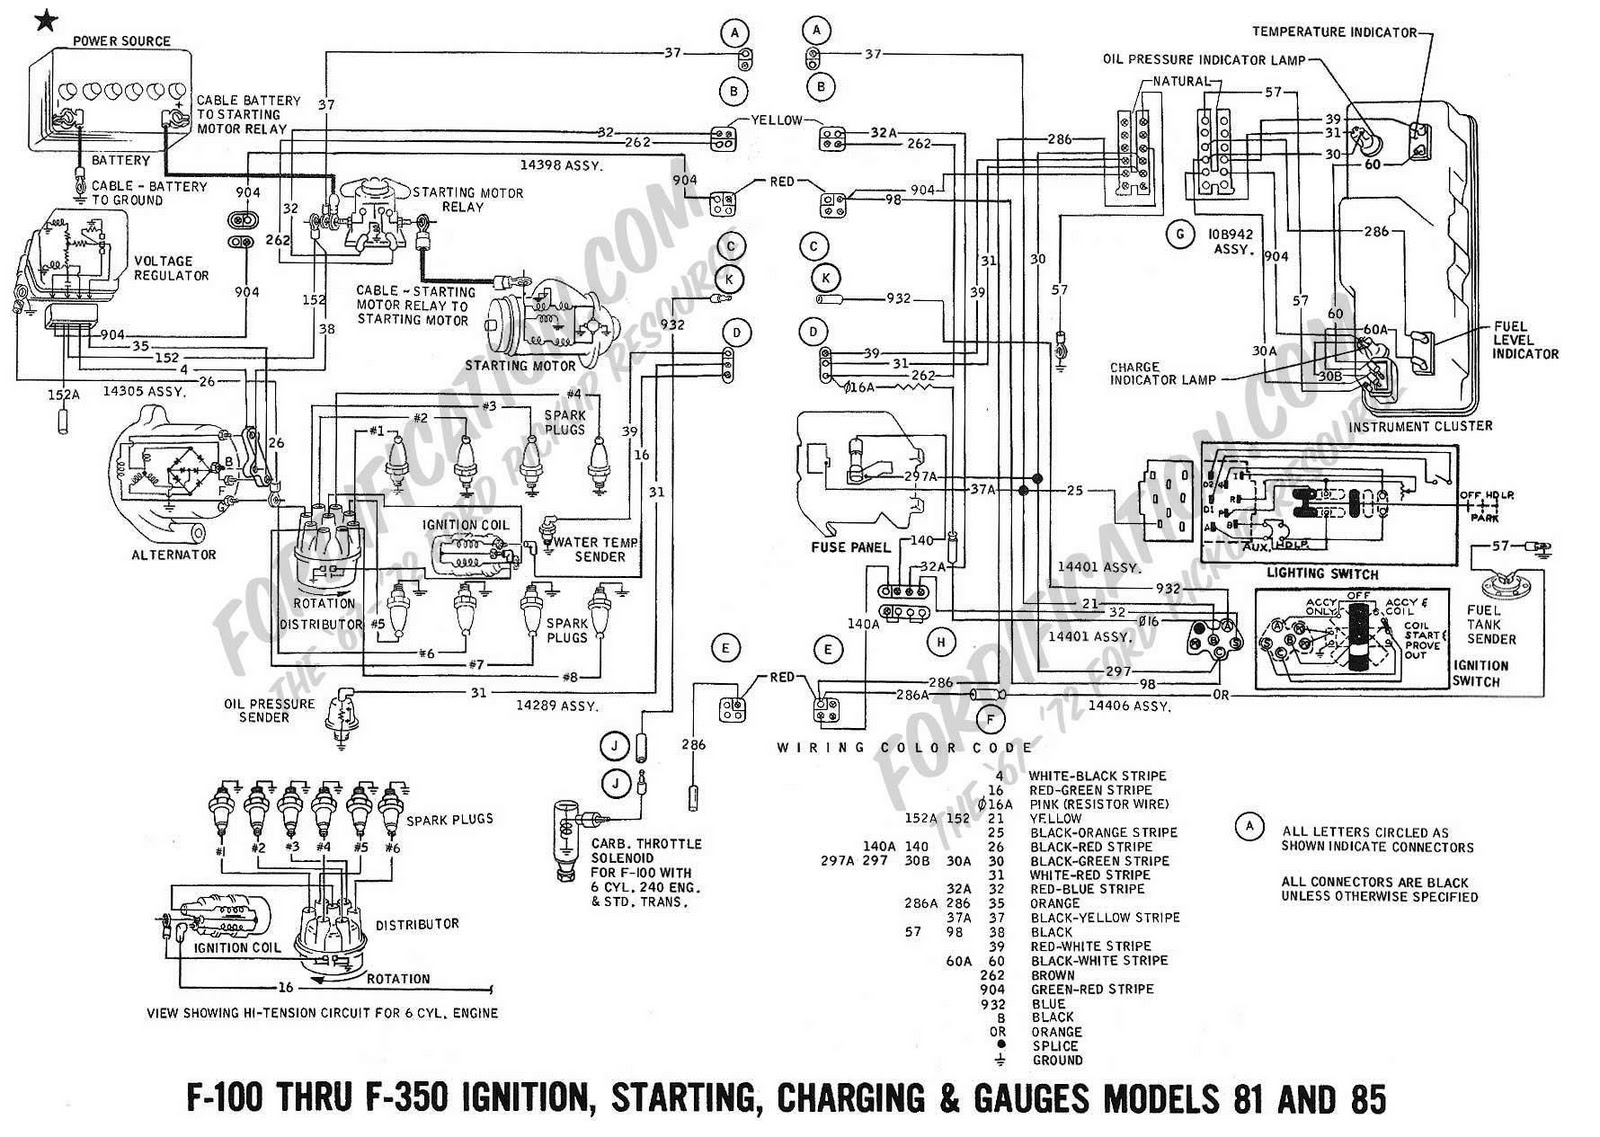 medium resolution of 1977 ford ltd wiring diagram wiring diagram schematics ford pinto engine swap 78 ford pinto wiring